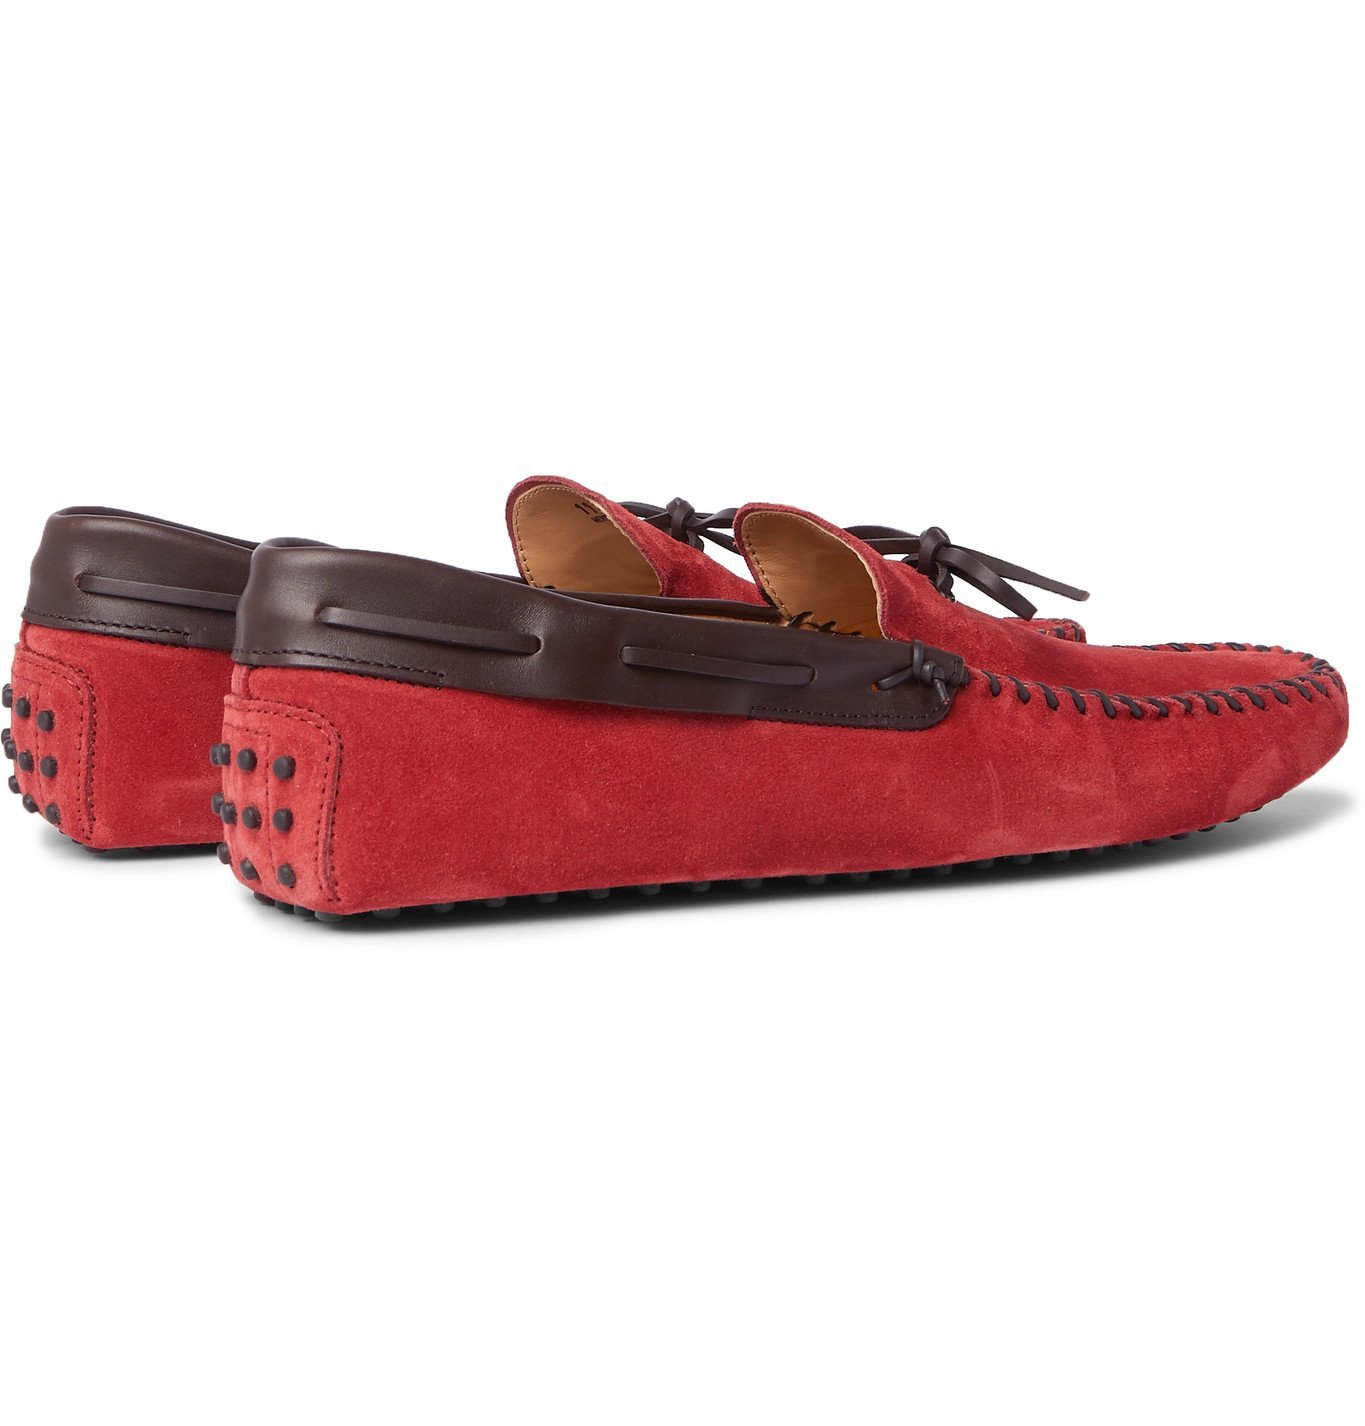 Tod's - Gommino Leather-Trimmed Suede Driving Shoes - Red